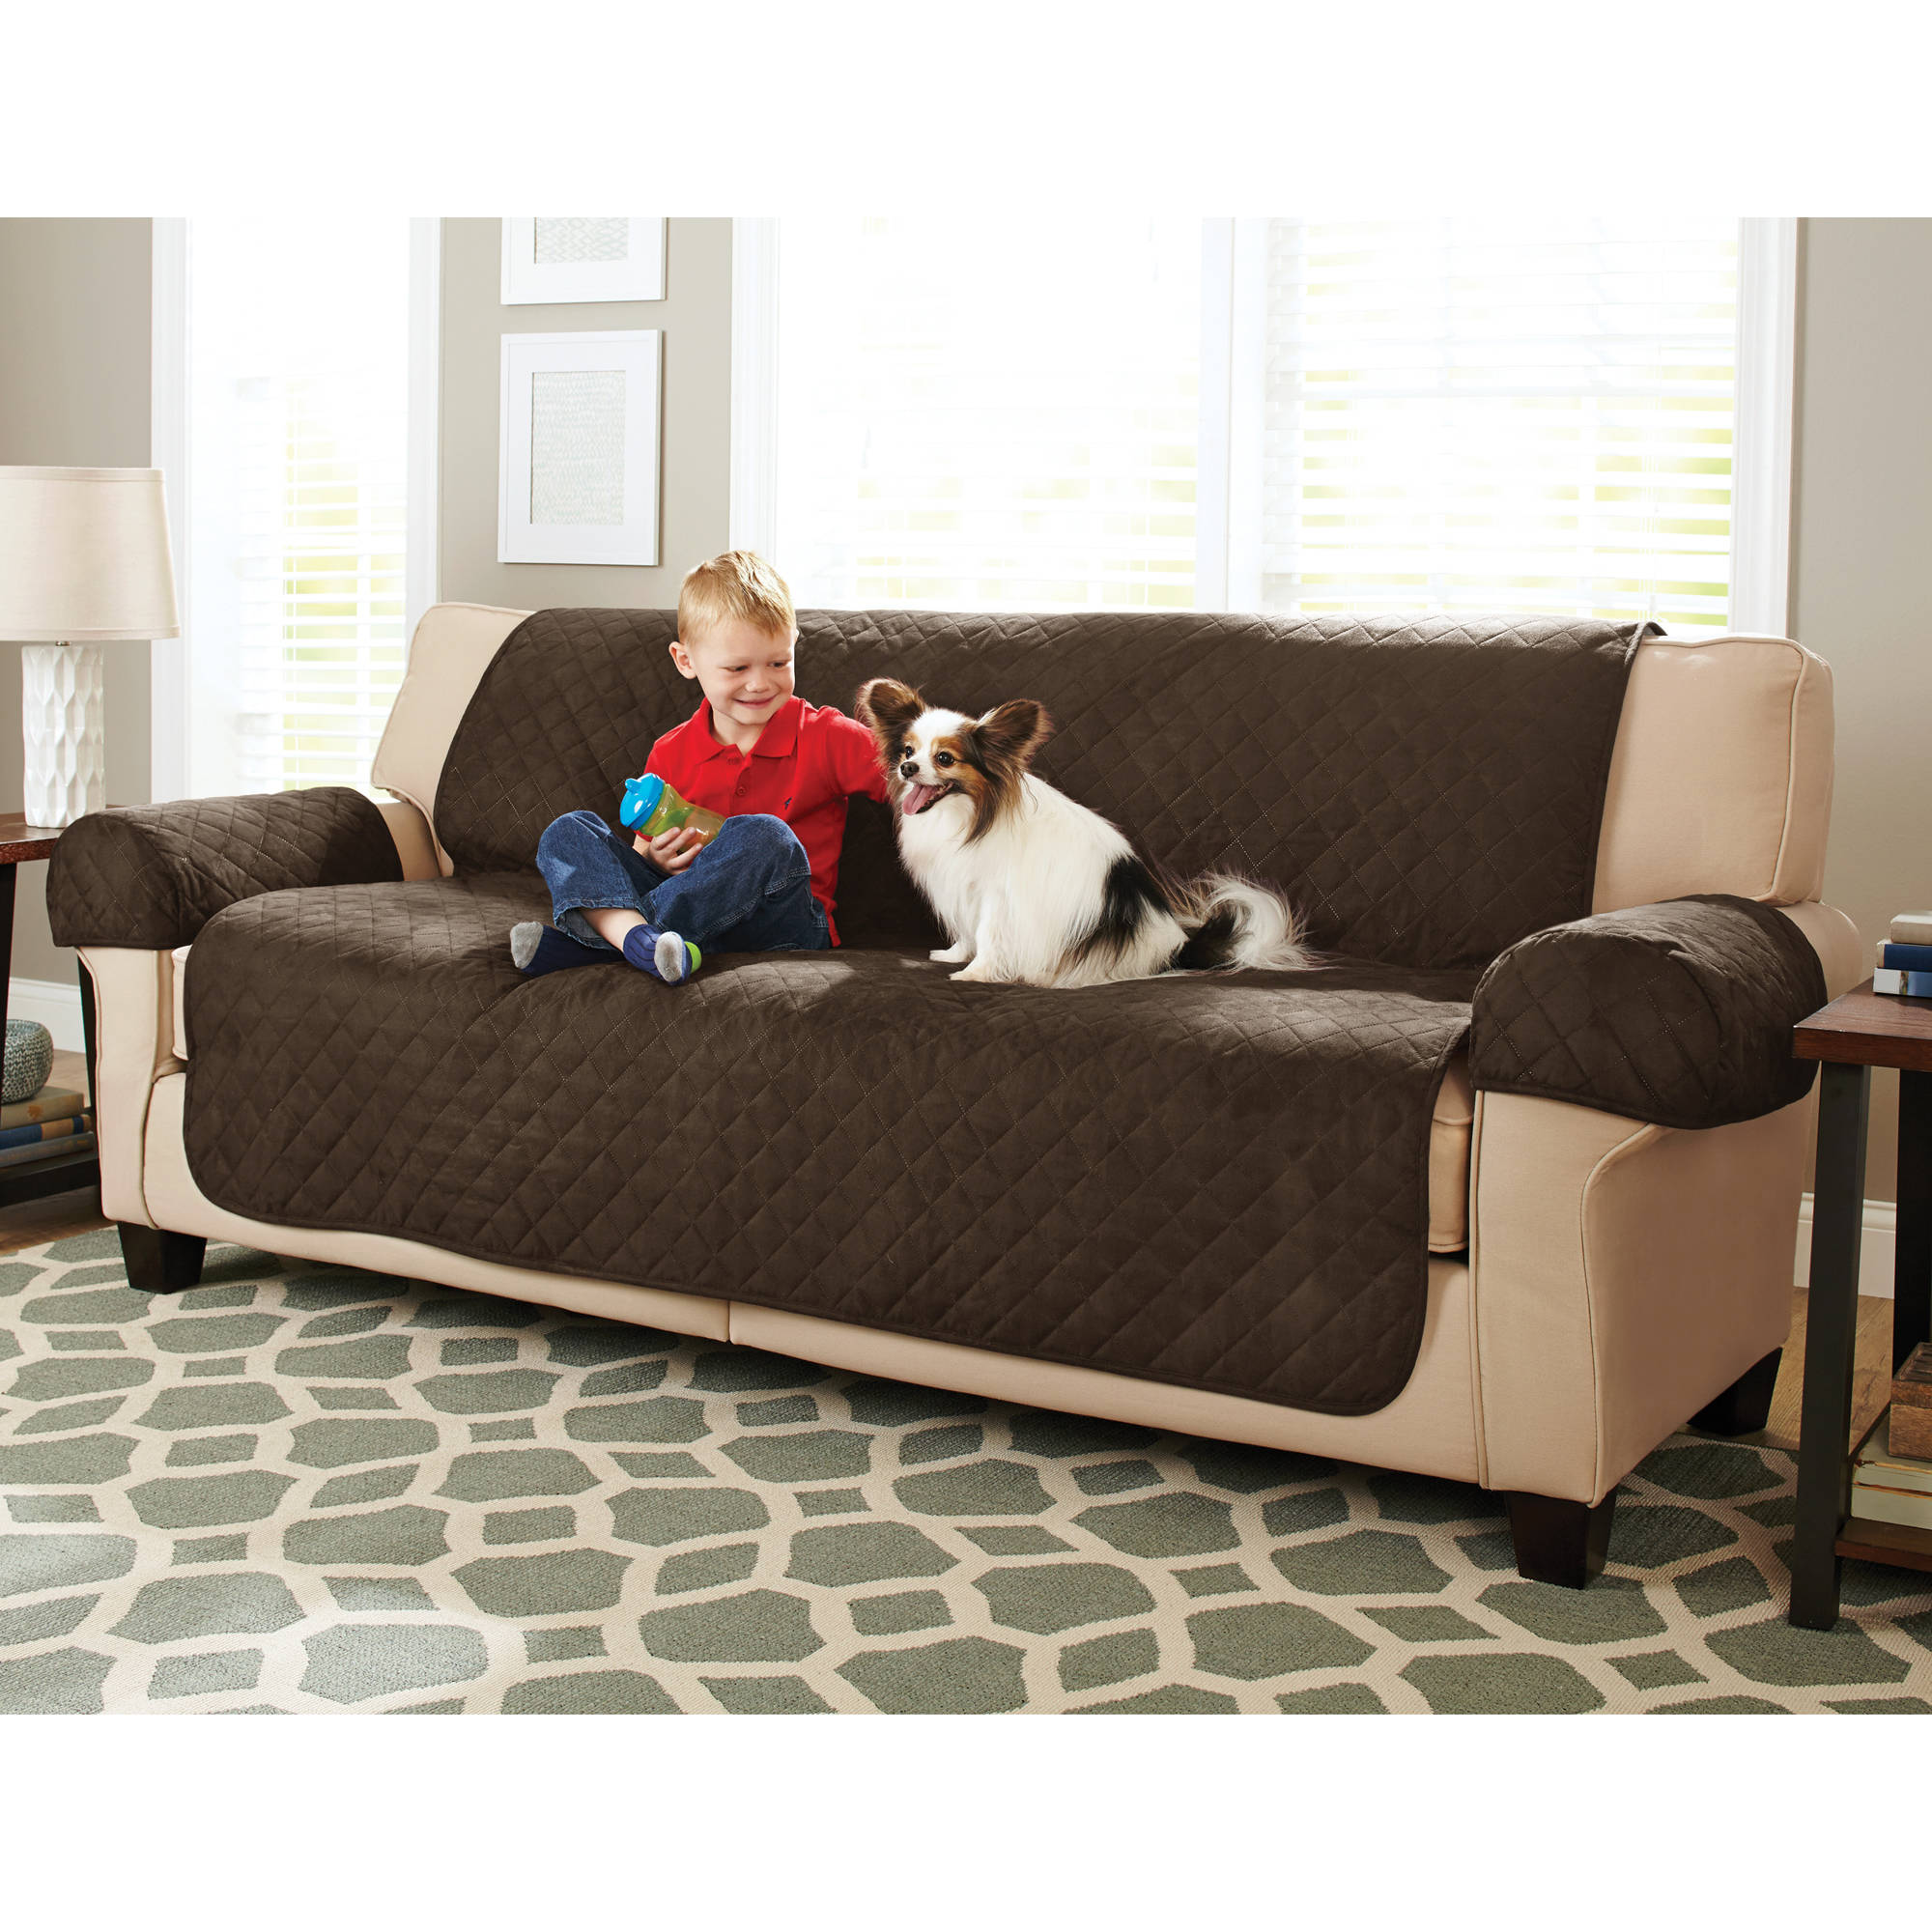 Quality Sofa Covers Better Homes And Gardens Waterproof Non Slip Sofa Furniture Pet Cover